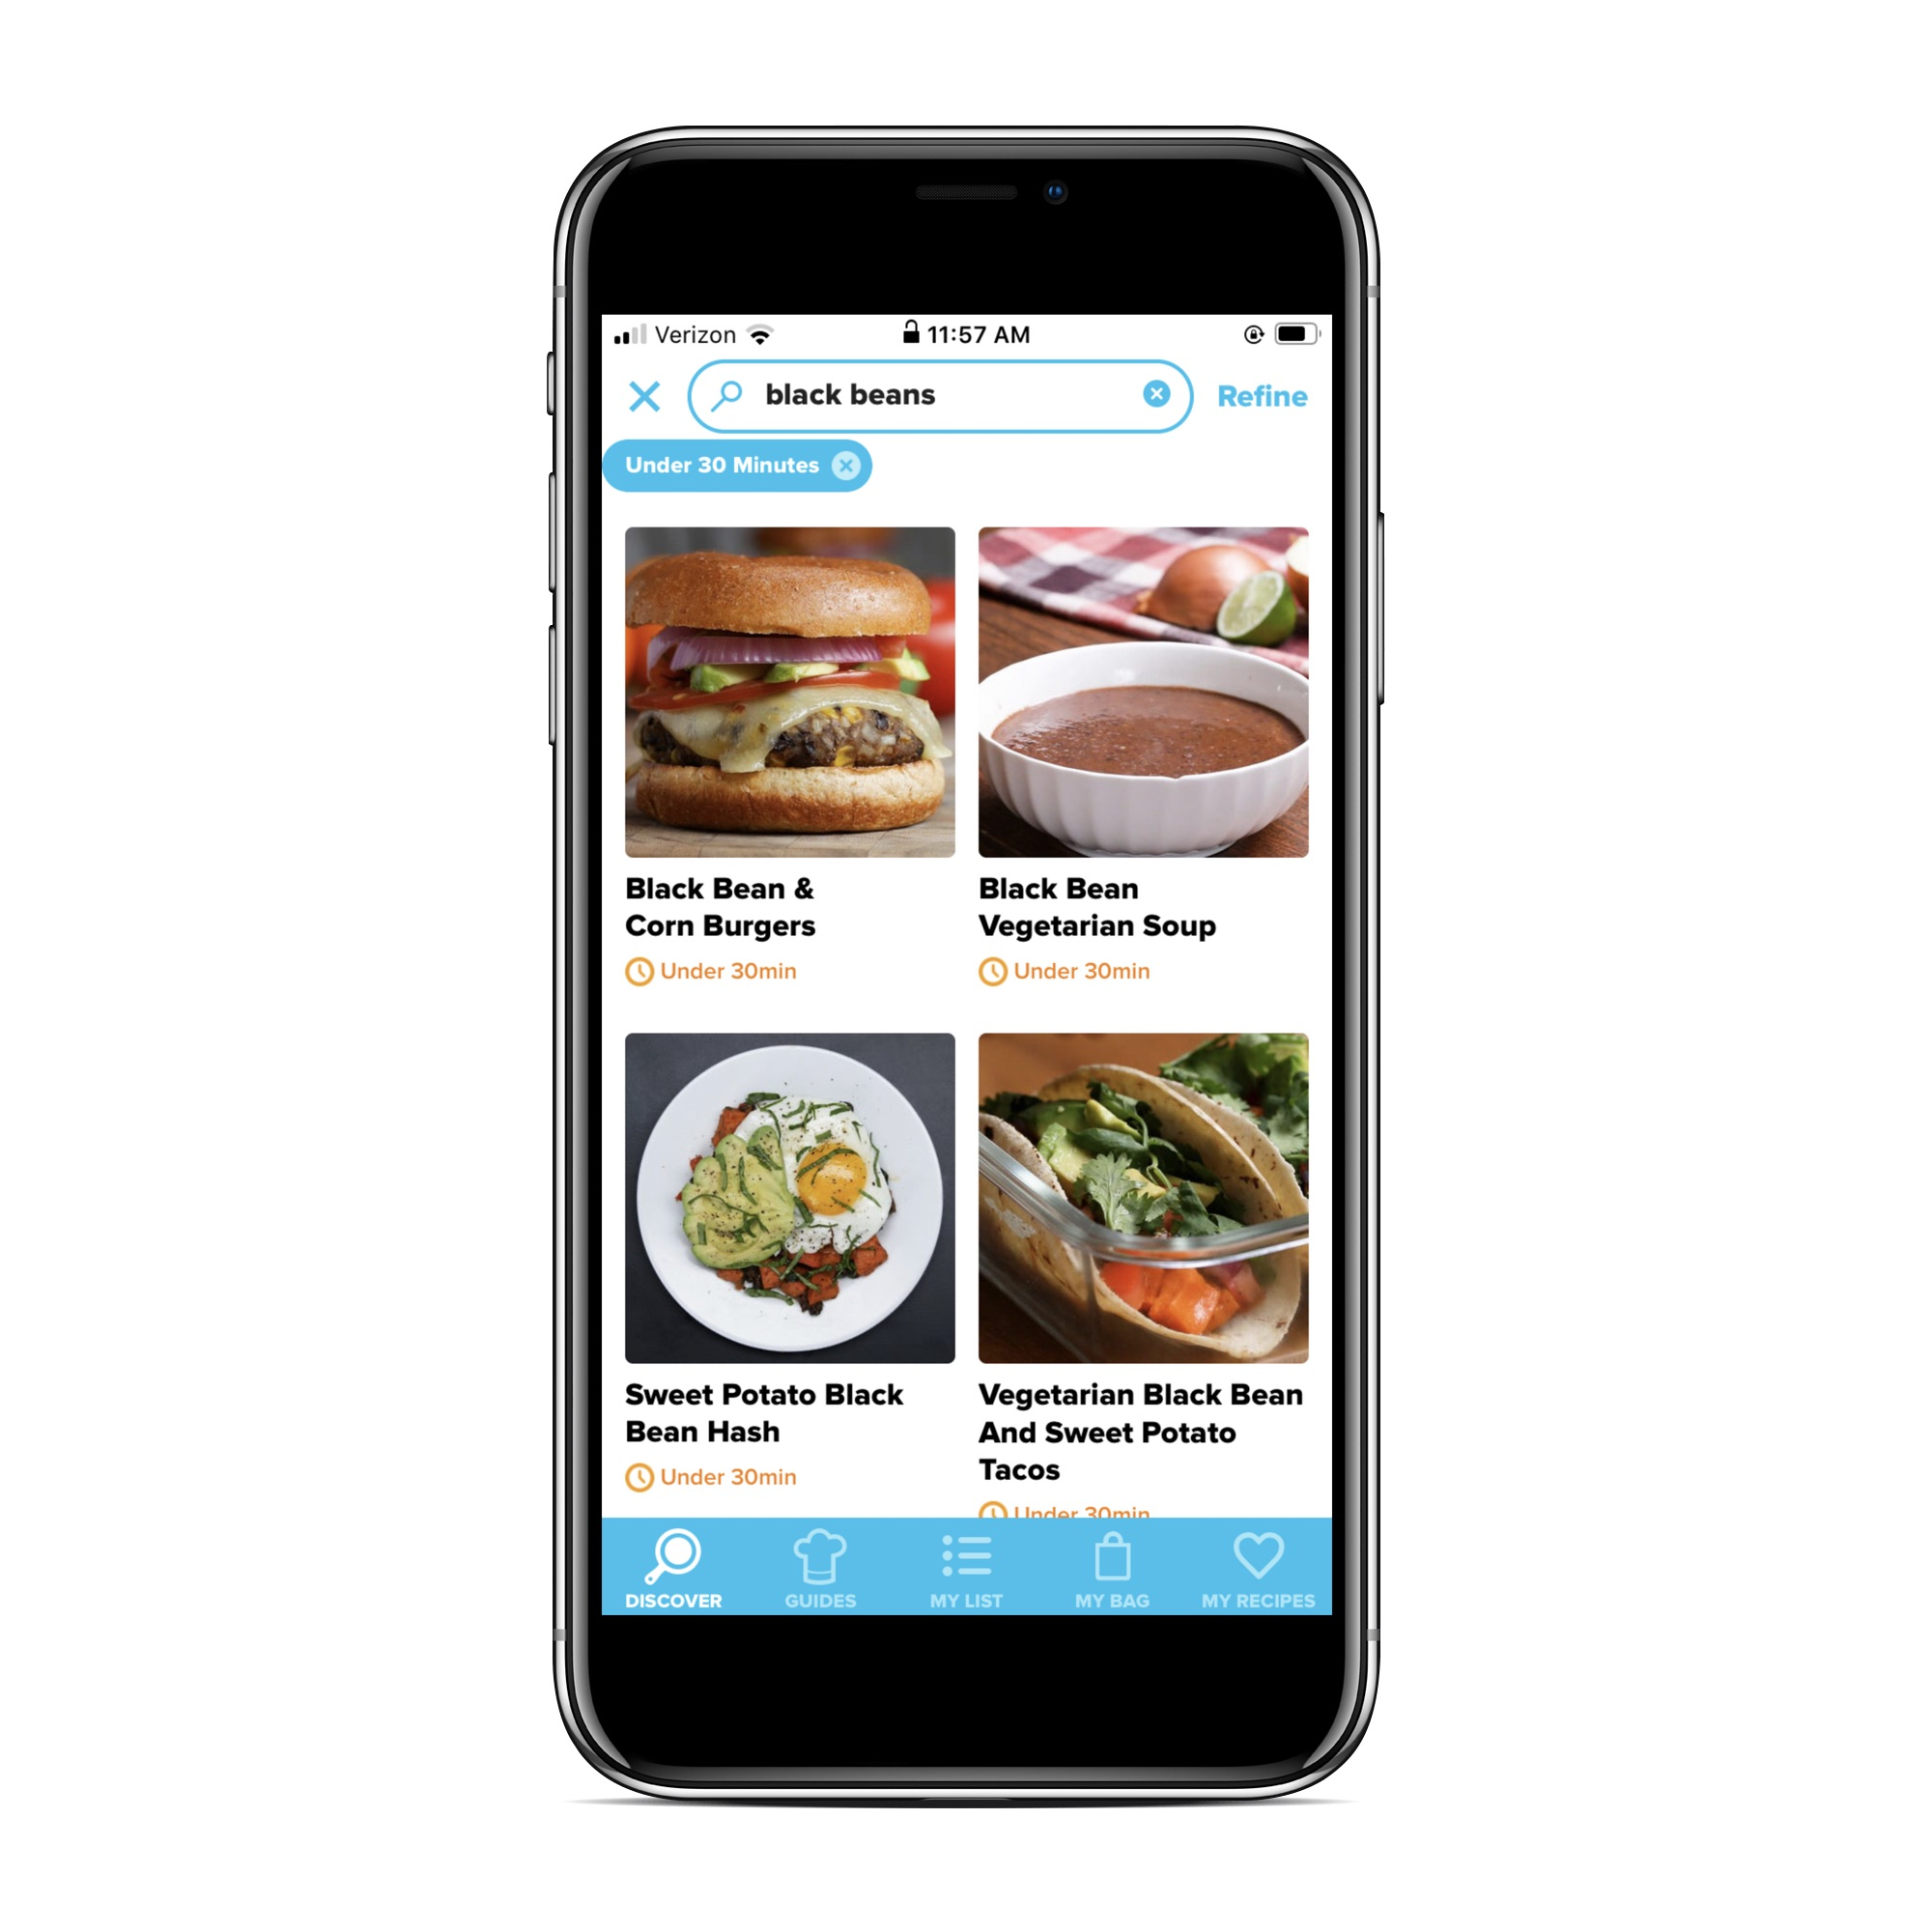 Recipe apps that let you search by ingredient: Tasty